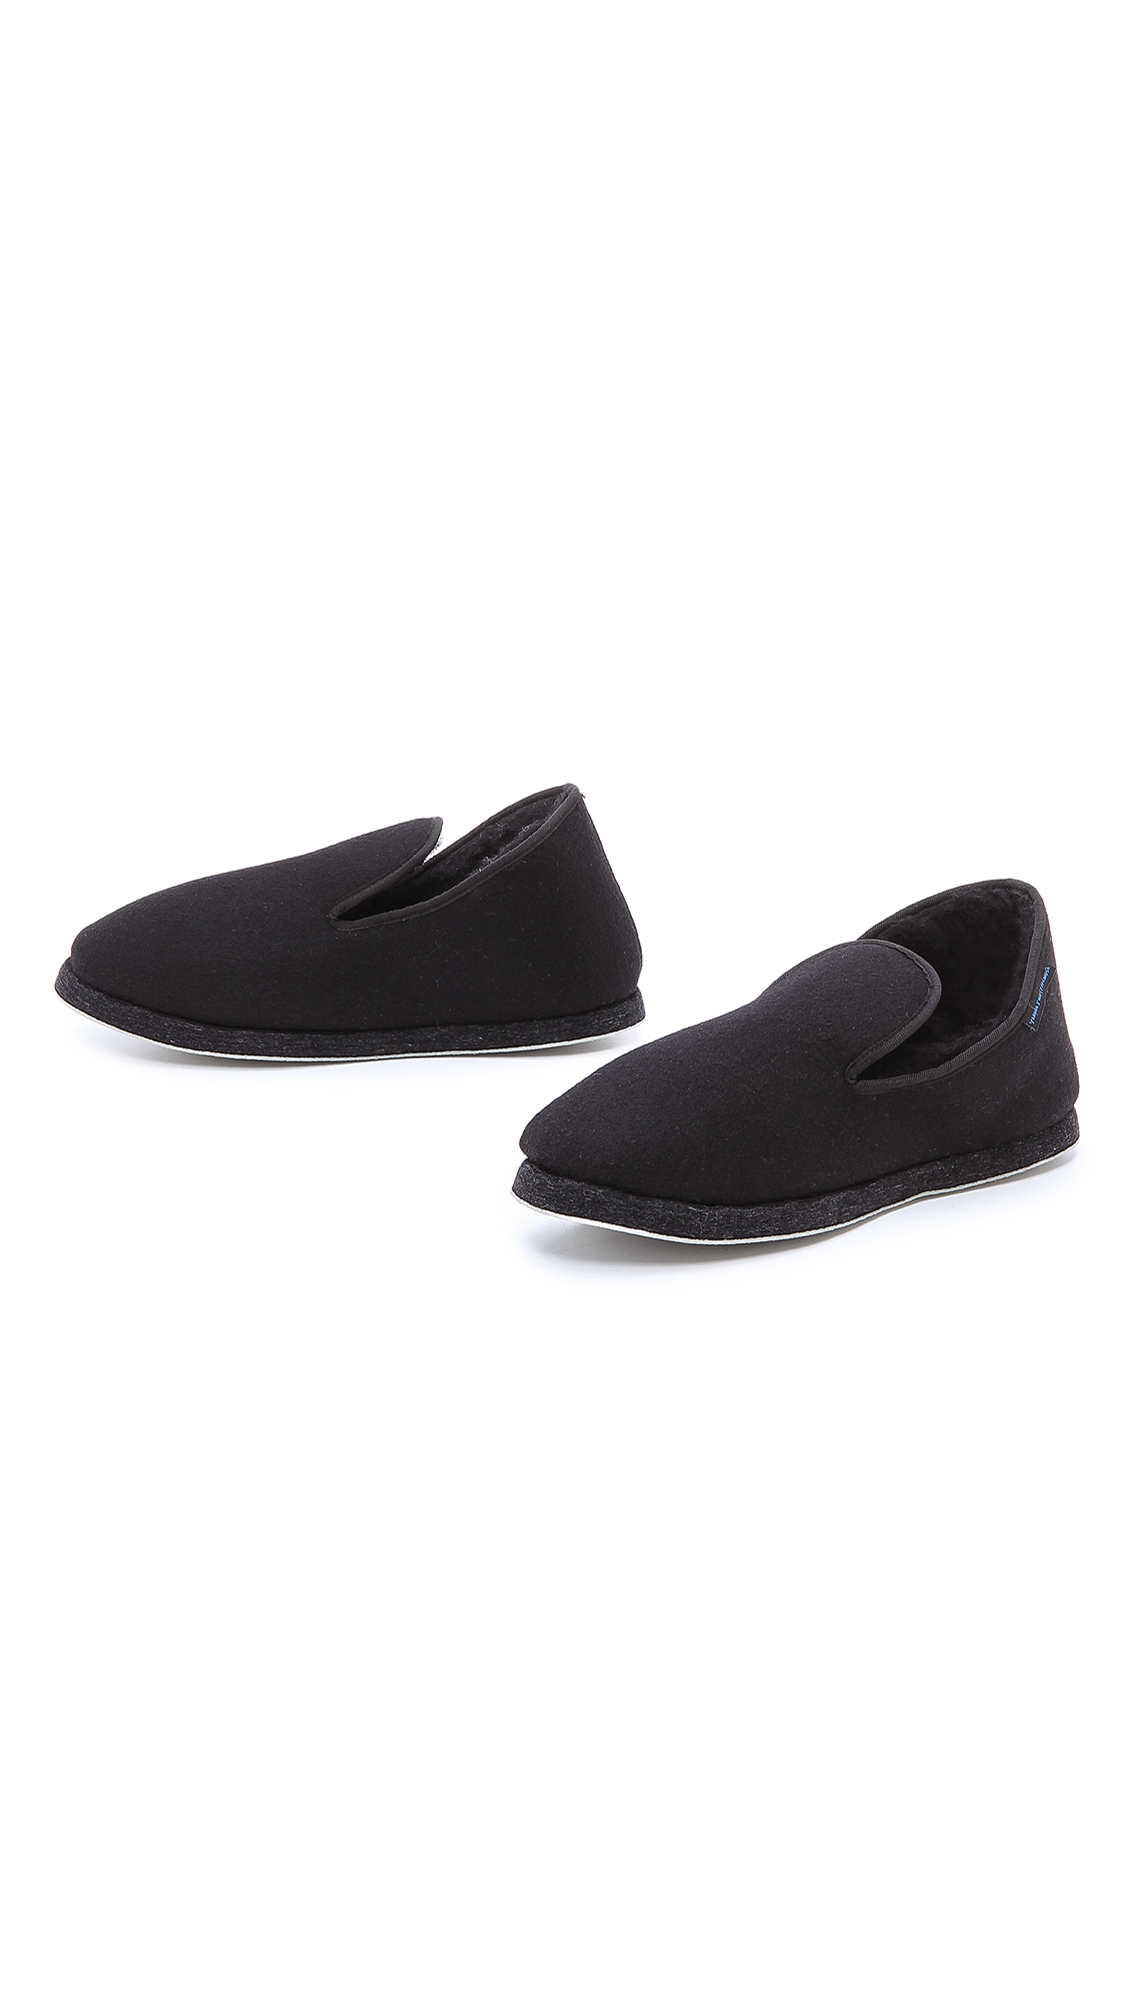 7e79bb7a8e6 Armor-Lux Classic Wool Slippers